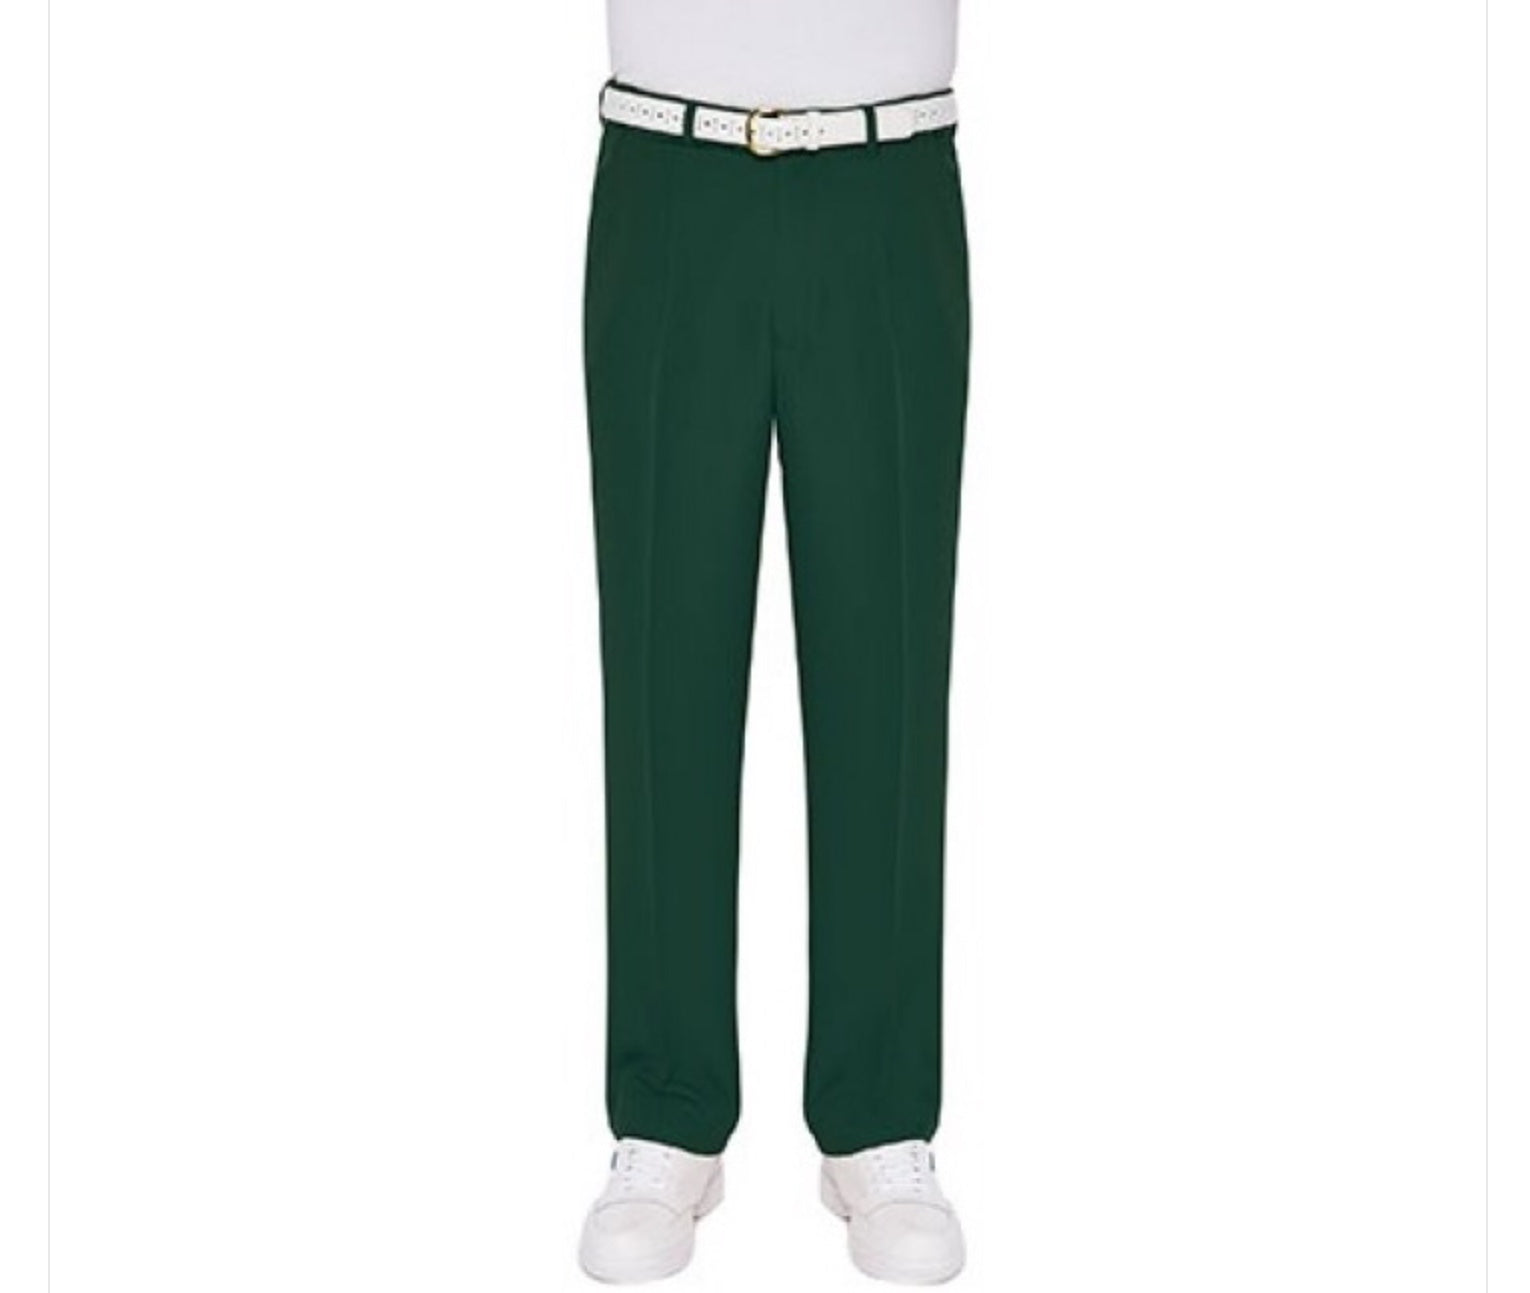 City Club Diplomat Skip Lawn Bowls Pants Standard Fit